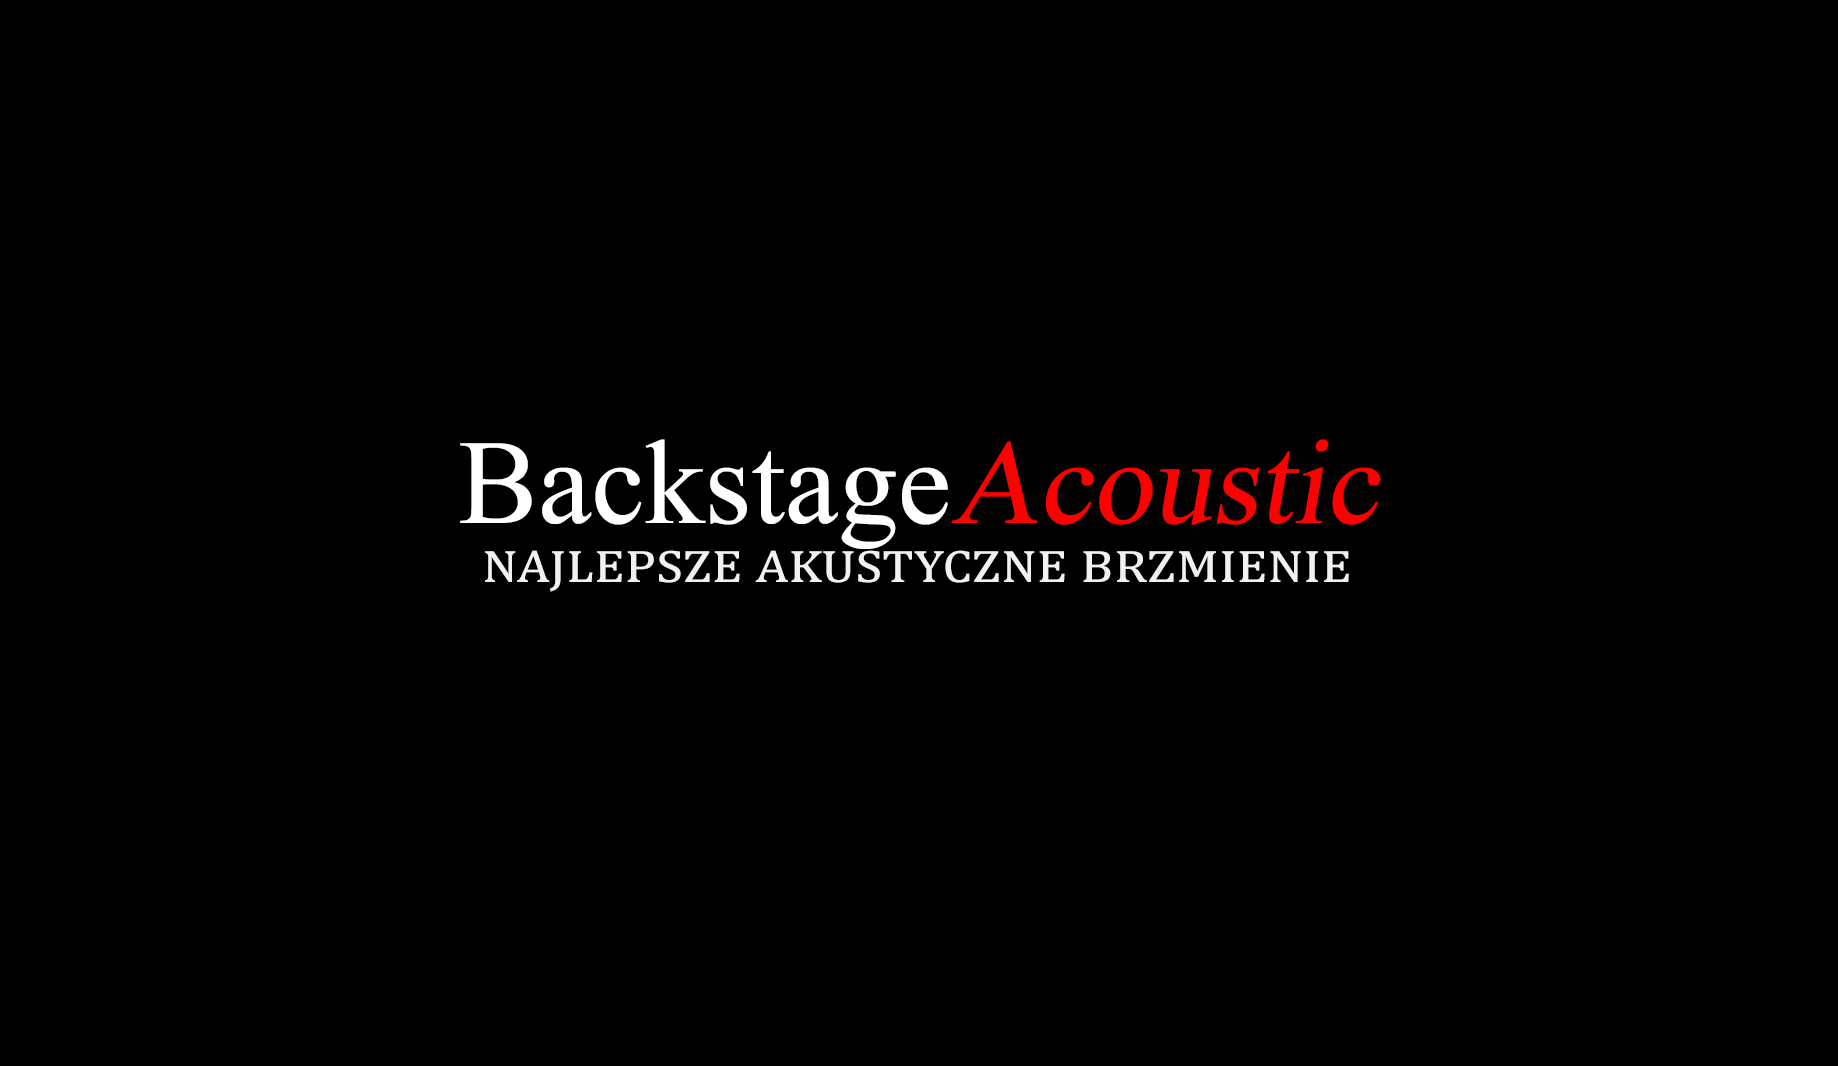 BACKSTAGE ACOUSTIC